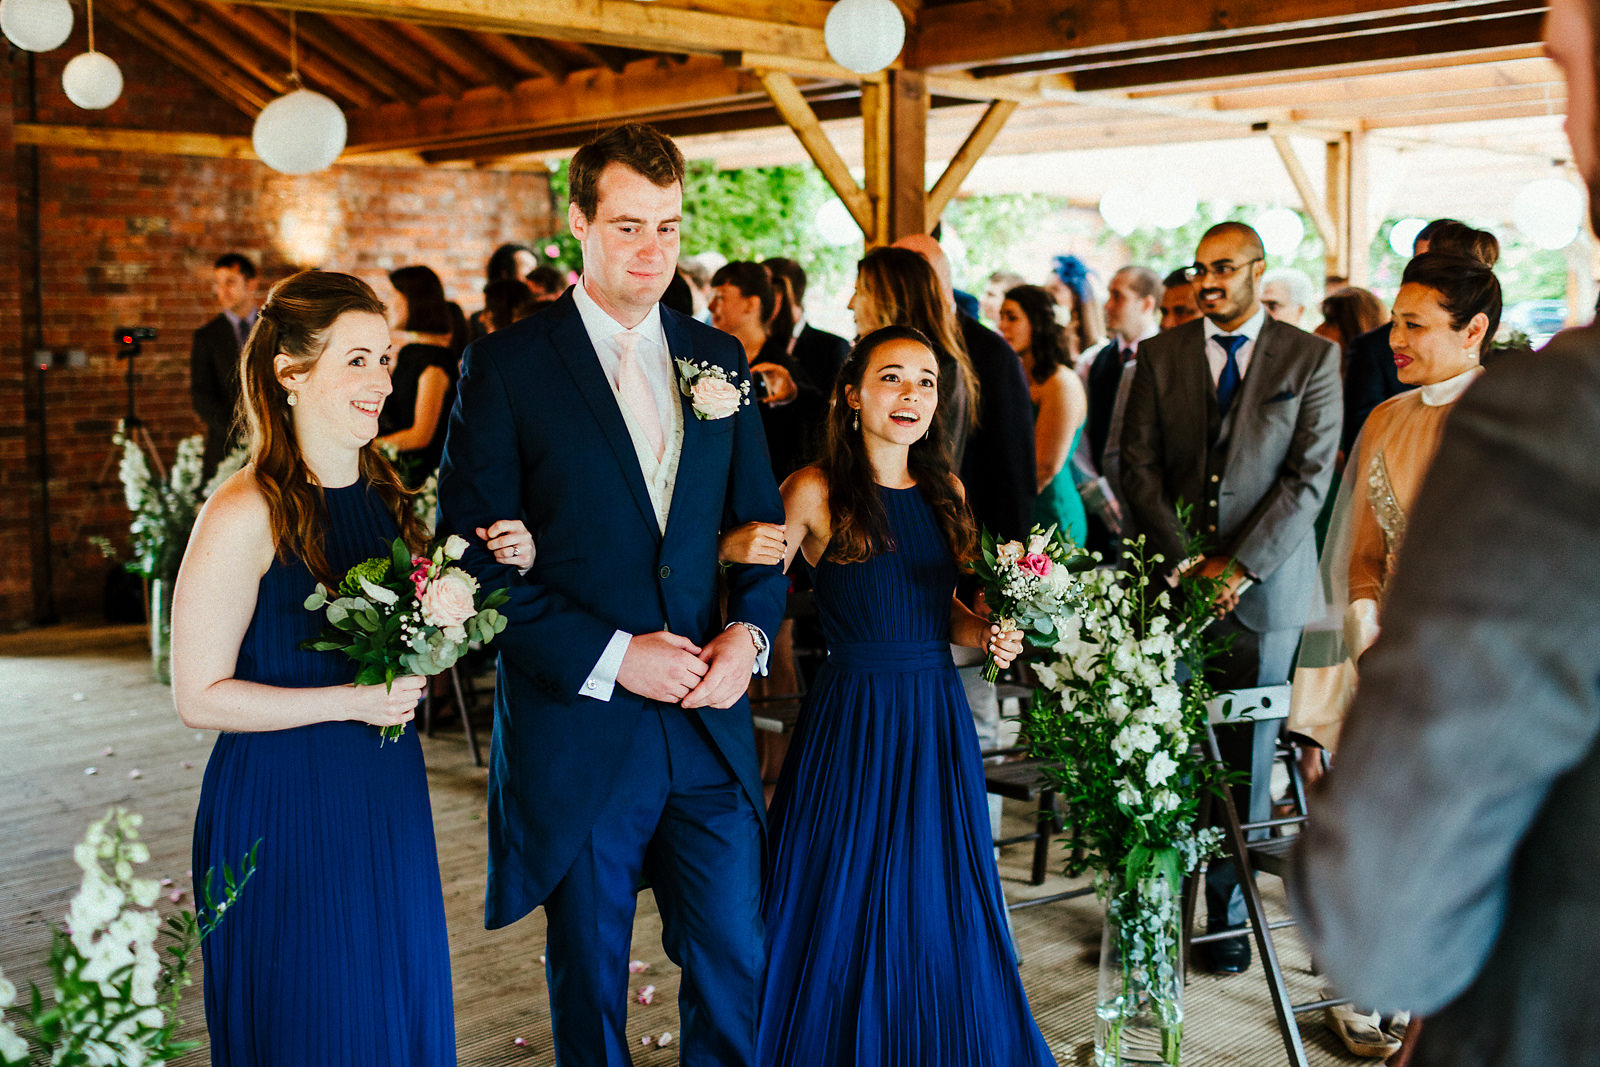 Bridesmaids walking down the aisle at Orchardleigh walled garden